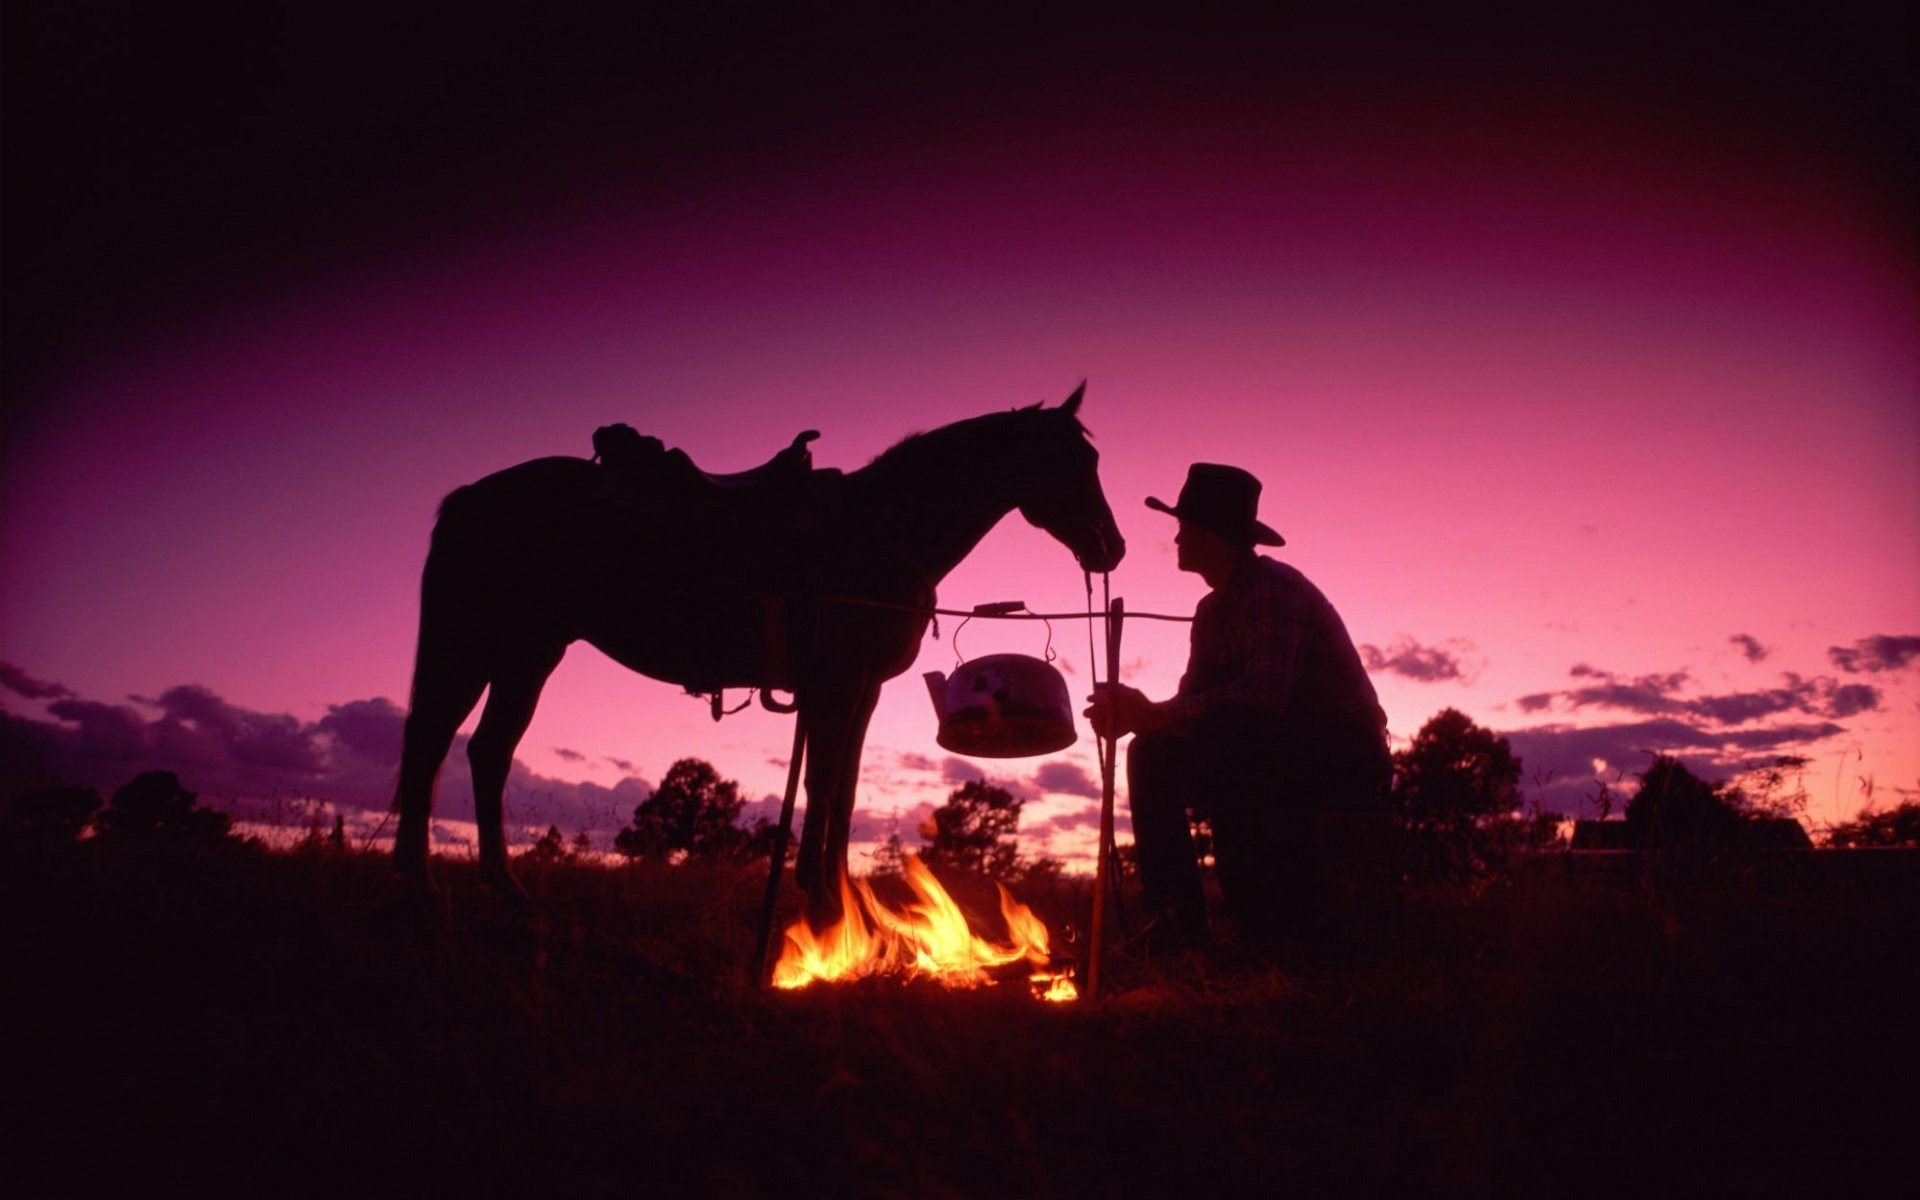 Country-Western-Sunset-Western-Cowboy-wallpaper-wpc5803762